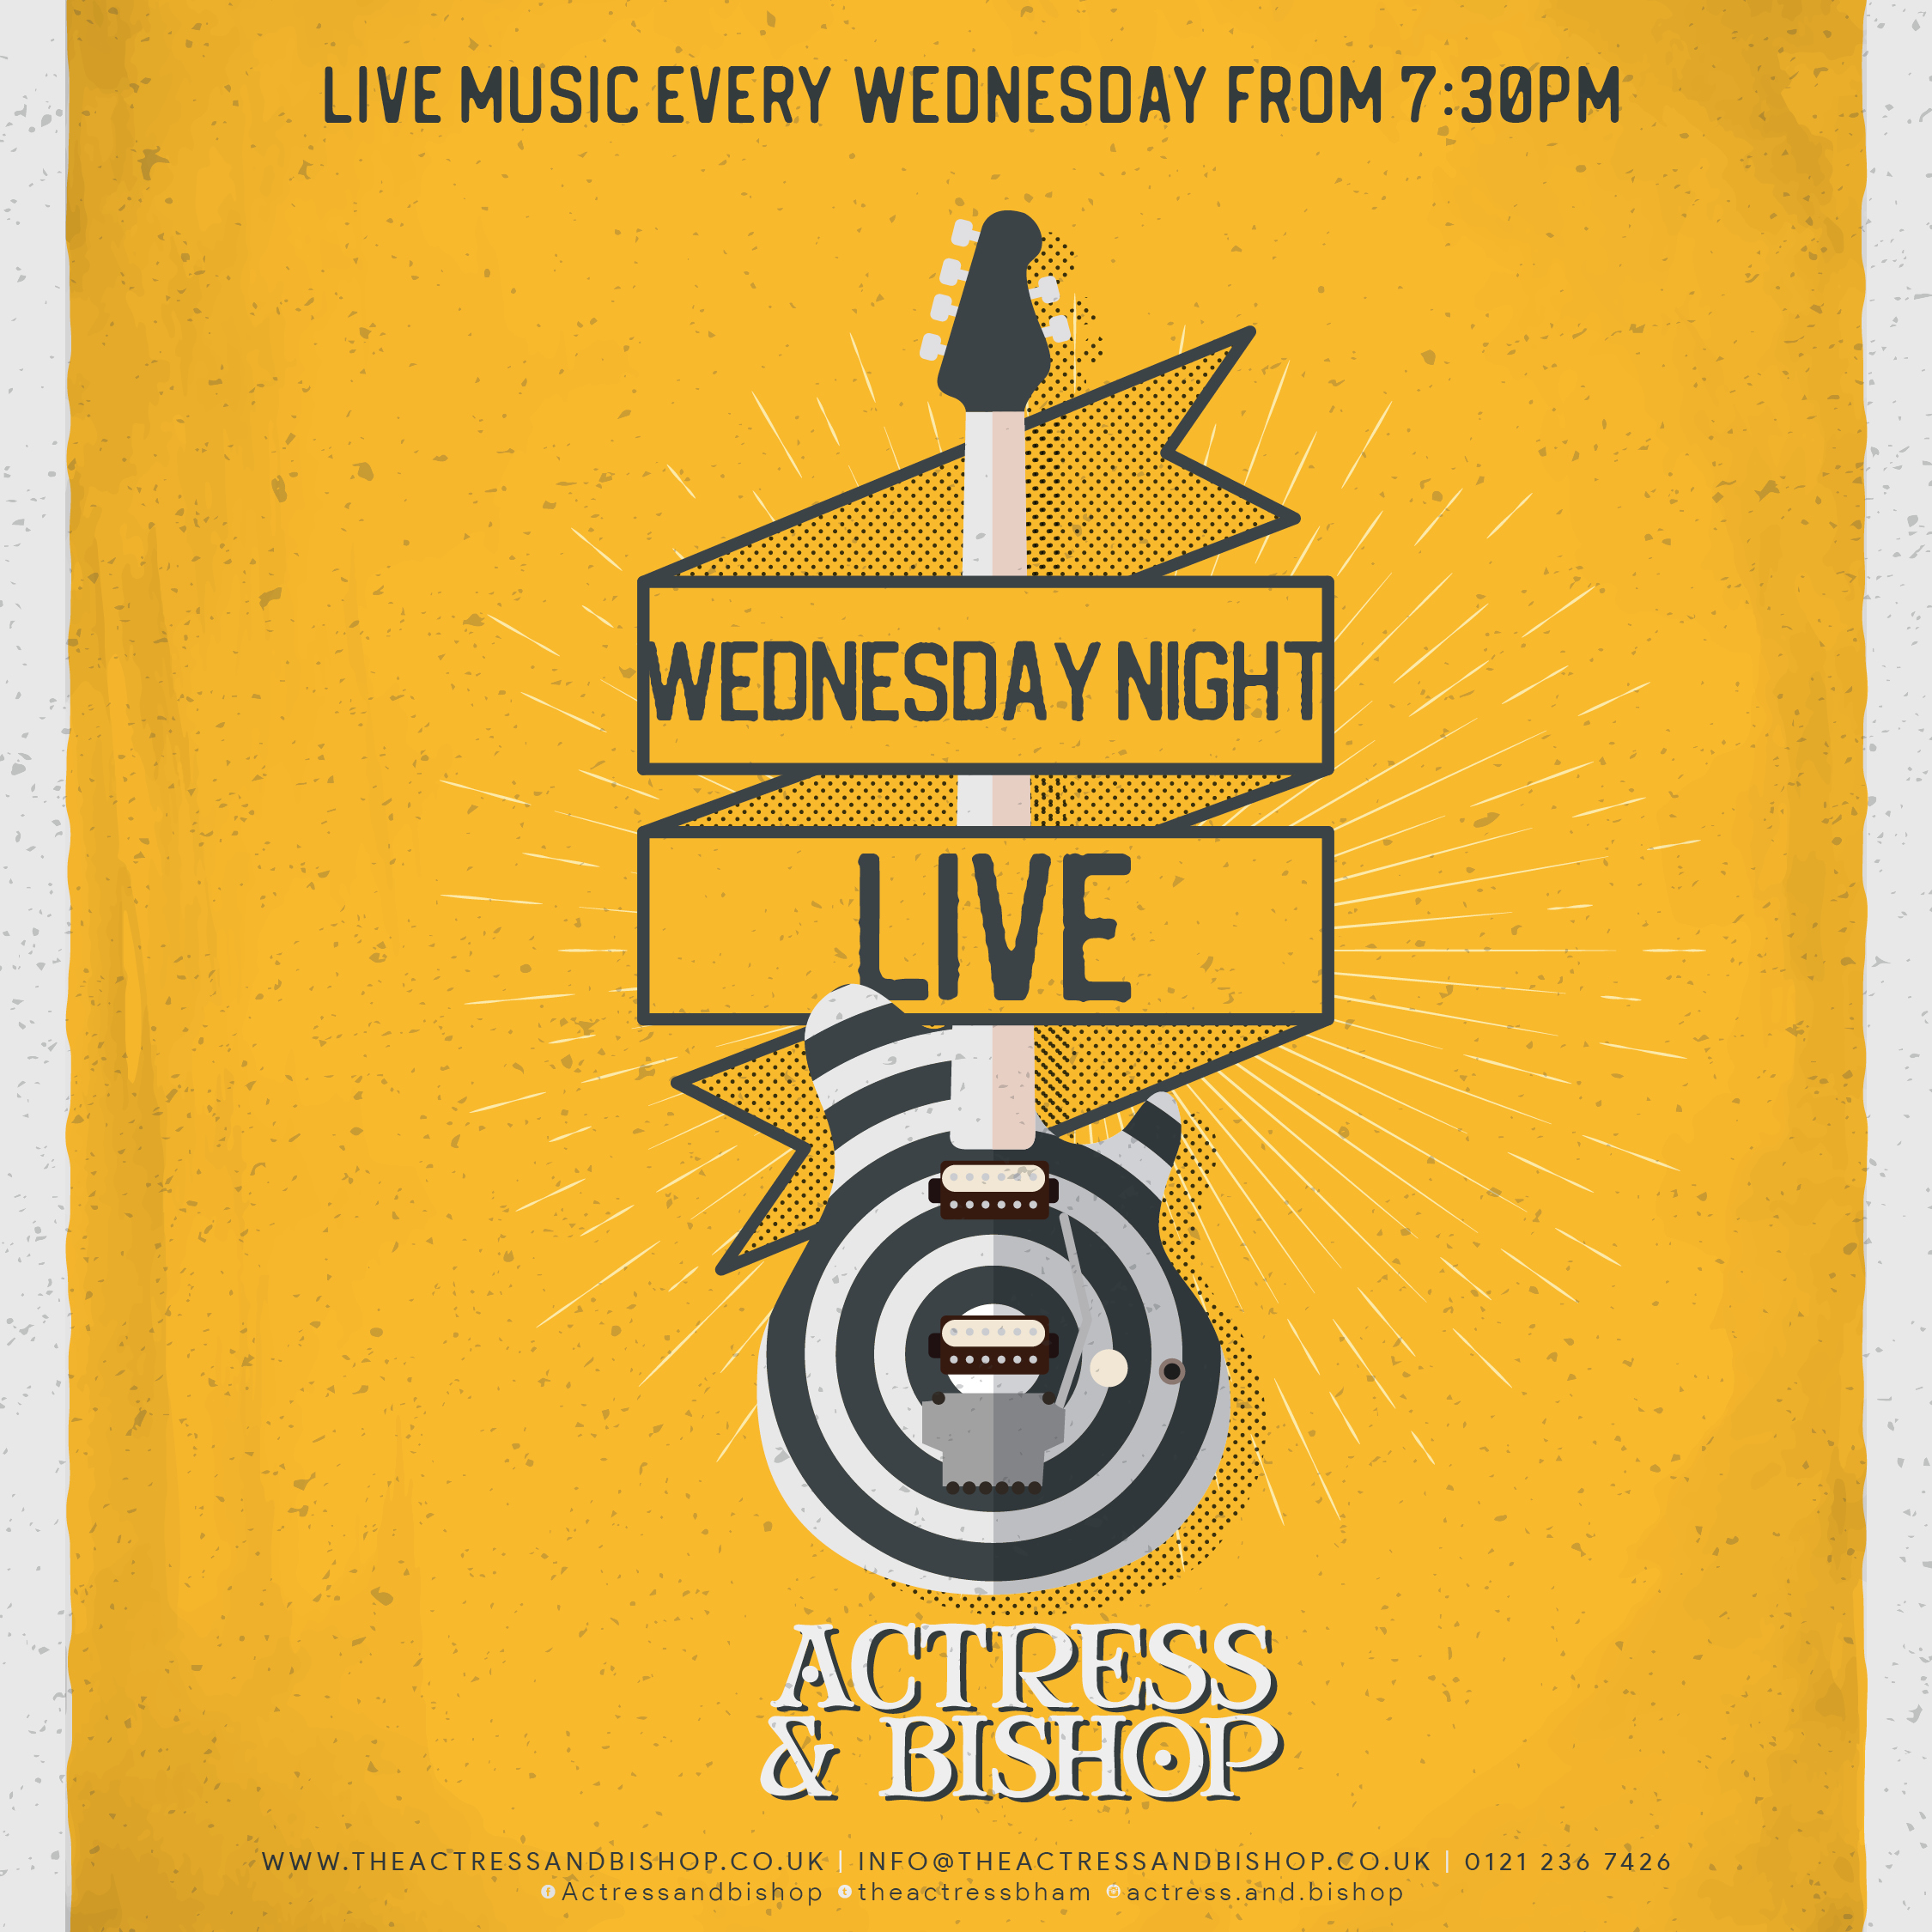 LIVE MUSIC RETURNS TO THE A&B